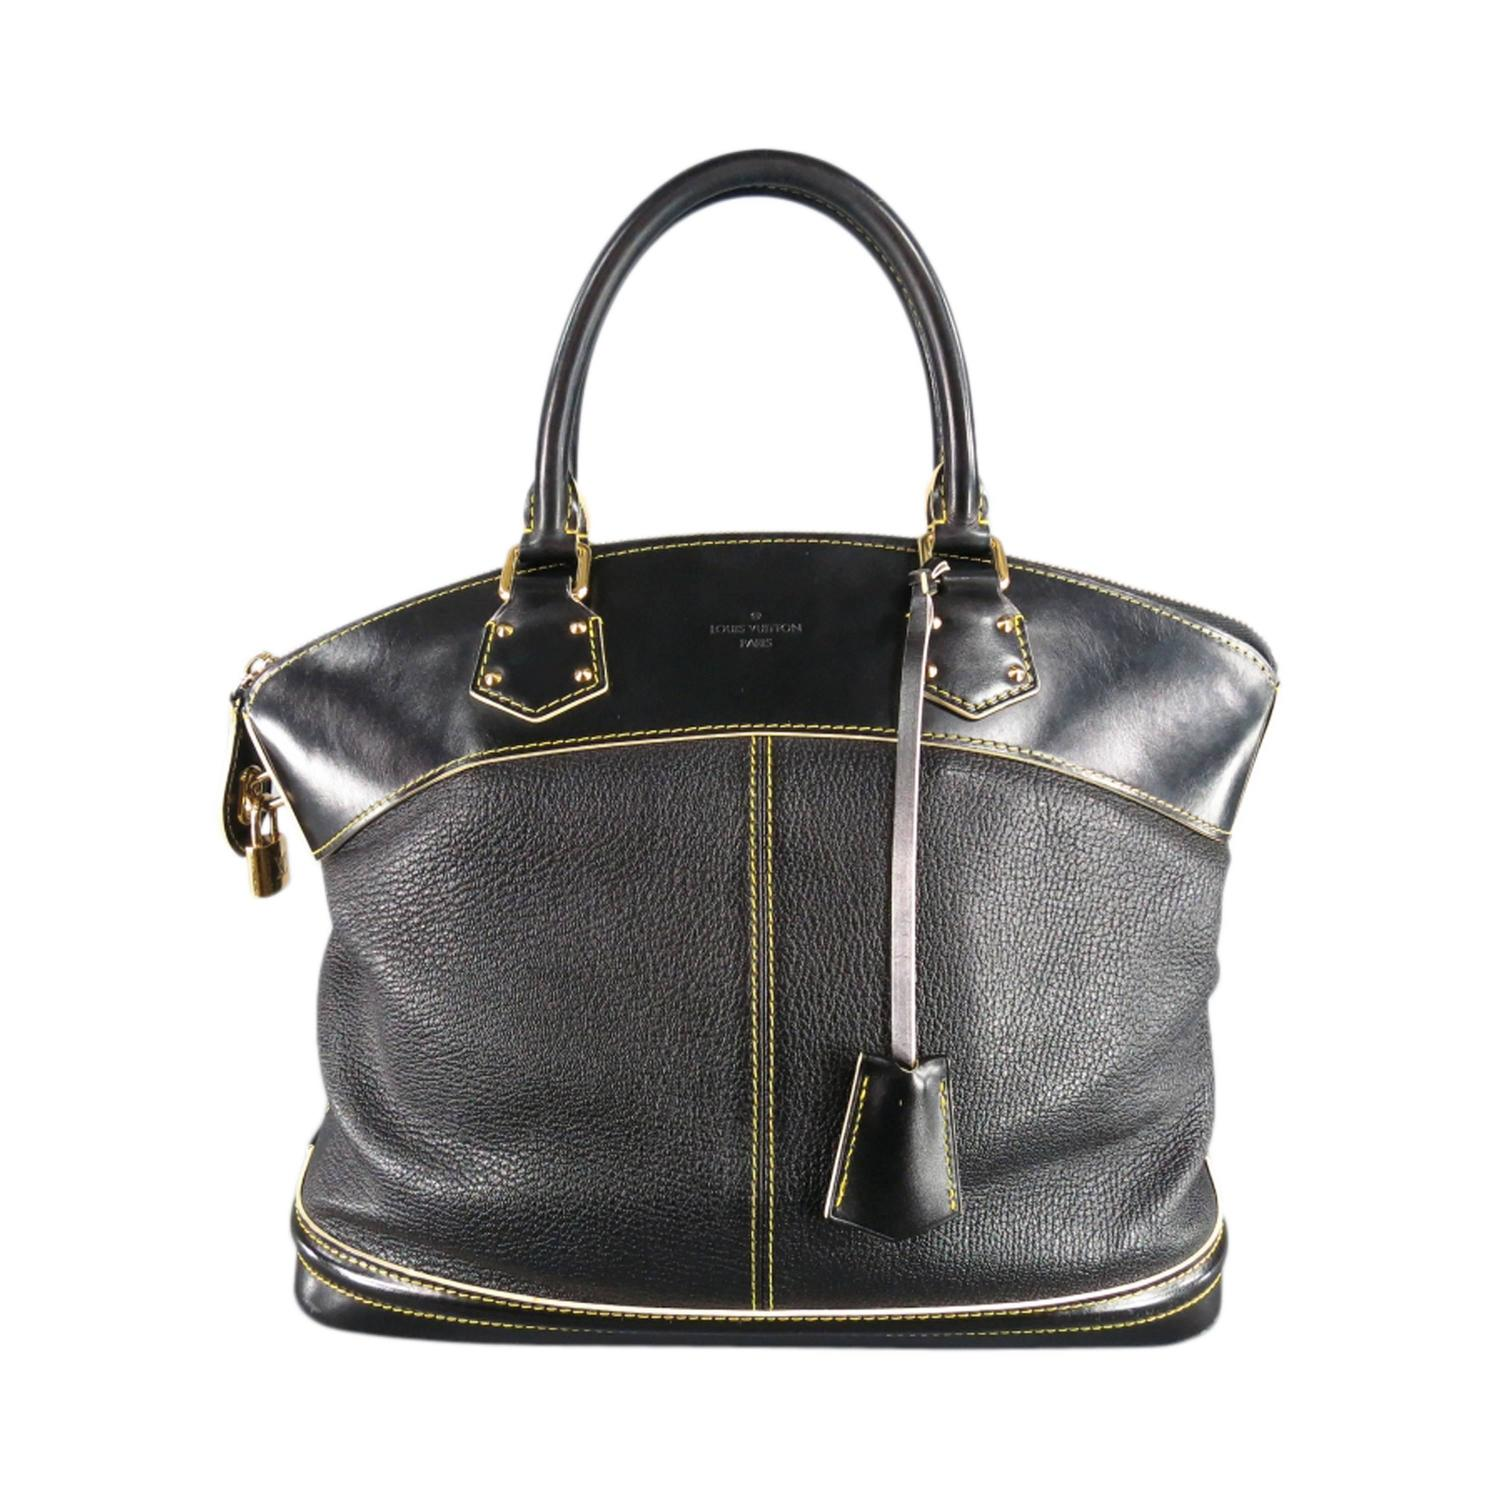 Louis Vuitton Black Leather Cuir Suhali Yellow Stitching